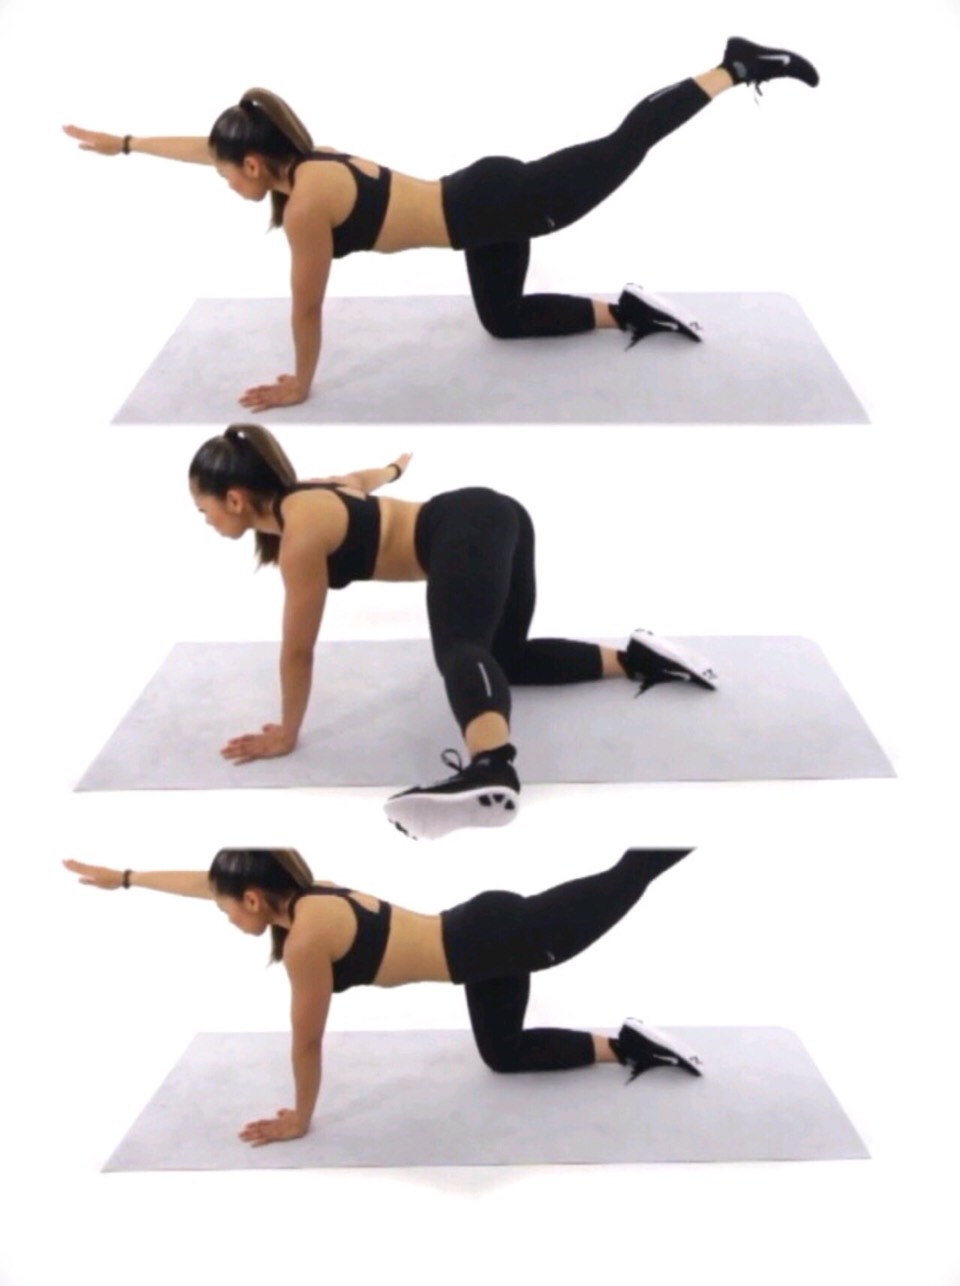 "This move is called, ""Wag Your Tail"" - you start by getting on all 4's, and extending one arm and one leg - move the arm and leg outwards farthest from you.  - do each leg/arm 30 times or more if you'd like."